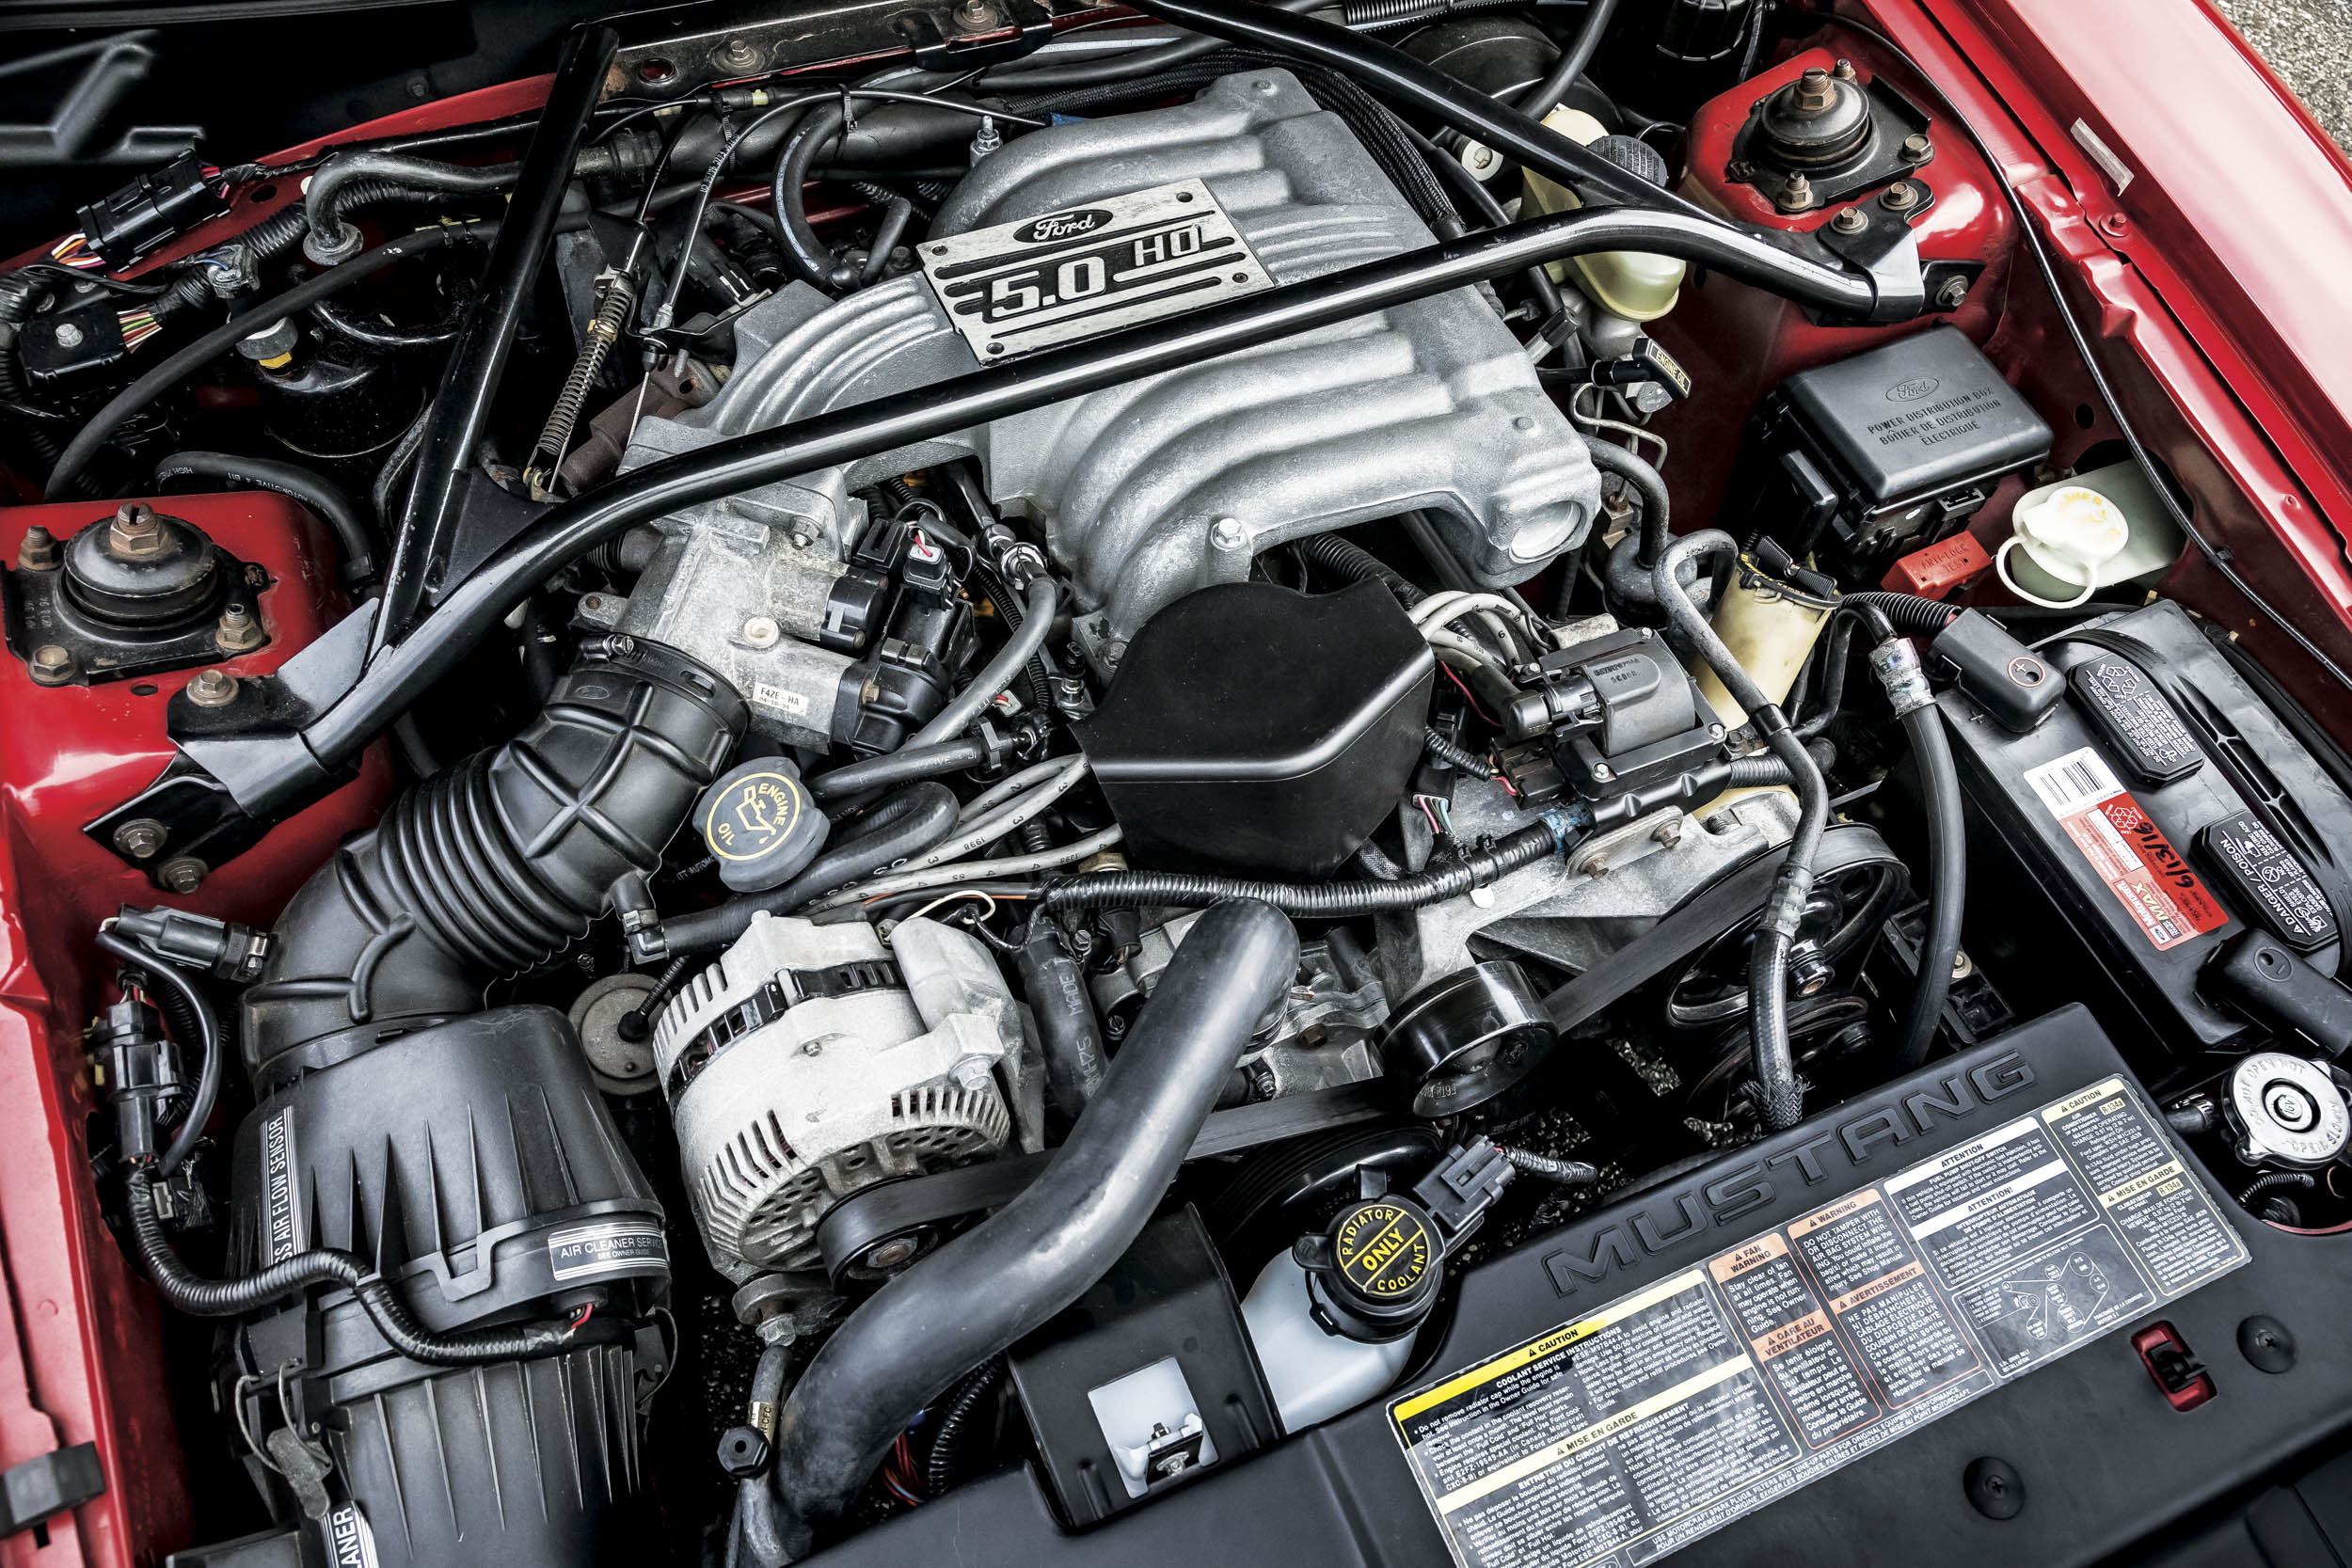 Coletti and company saw no need to mess with a good thing, so the proven 5.0 V-8 carried over to the new Mustang. It made 215 horsepower at 4200 rpm.